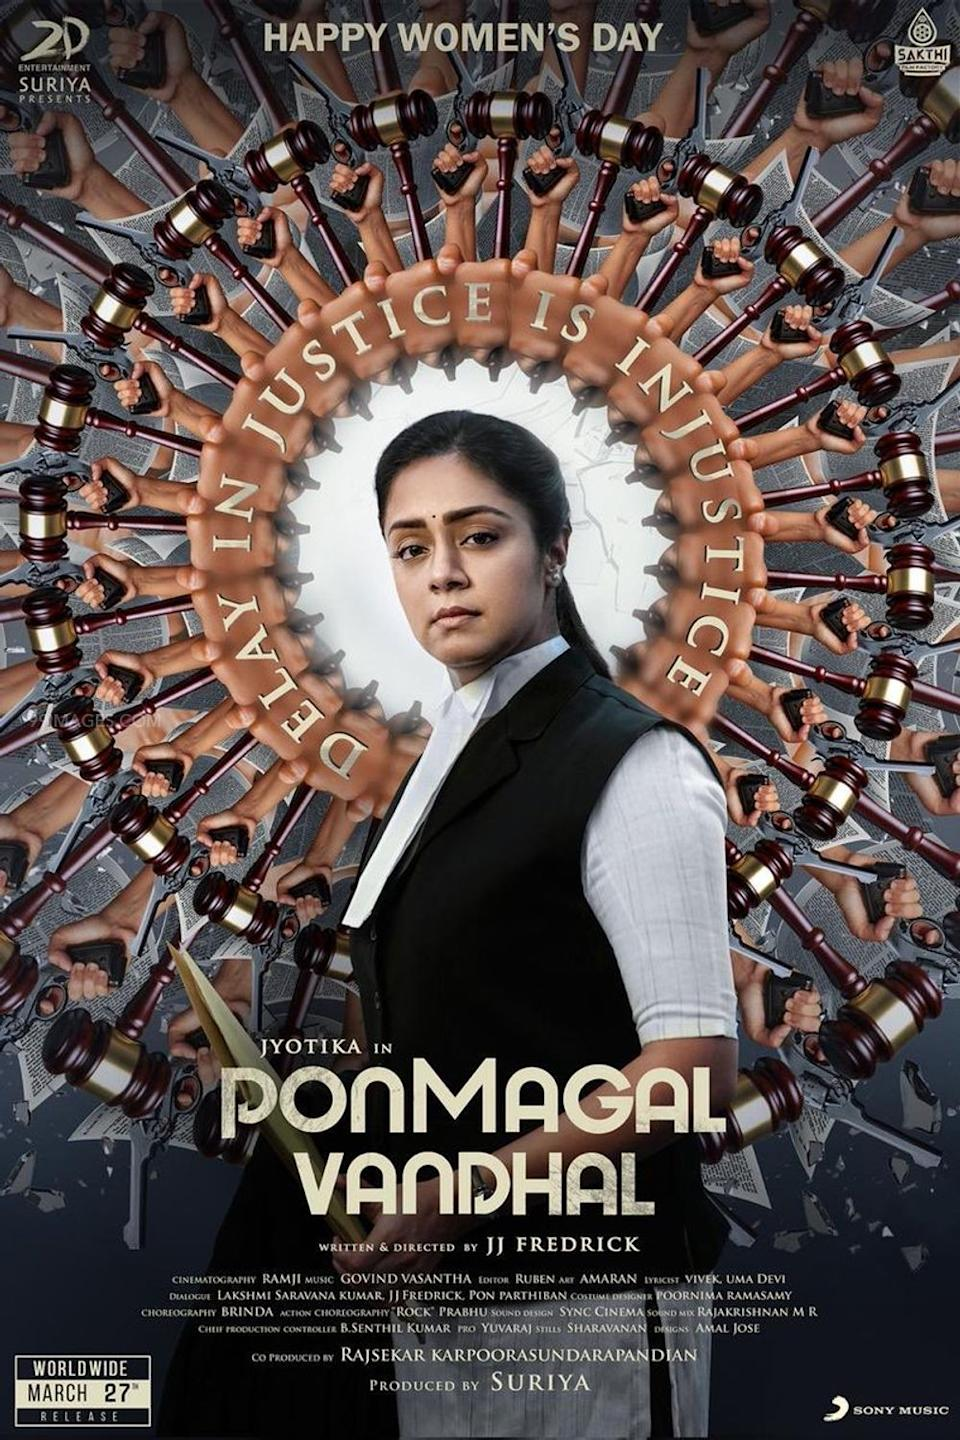 ✅[7] Ponmagal Vanthal Images, HD Photos (1080p), Wallpapers  (Android/iPhone) (2020)